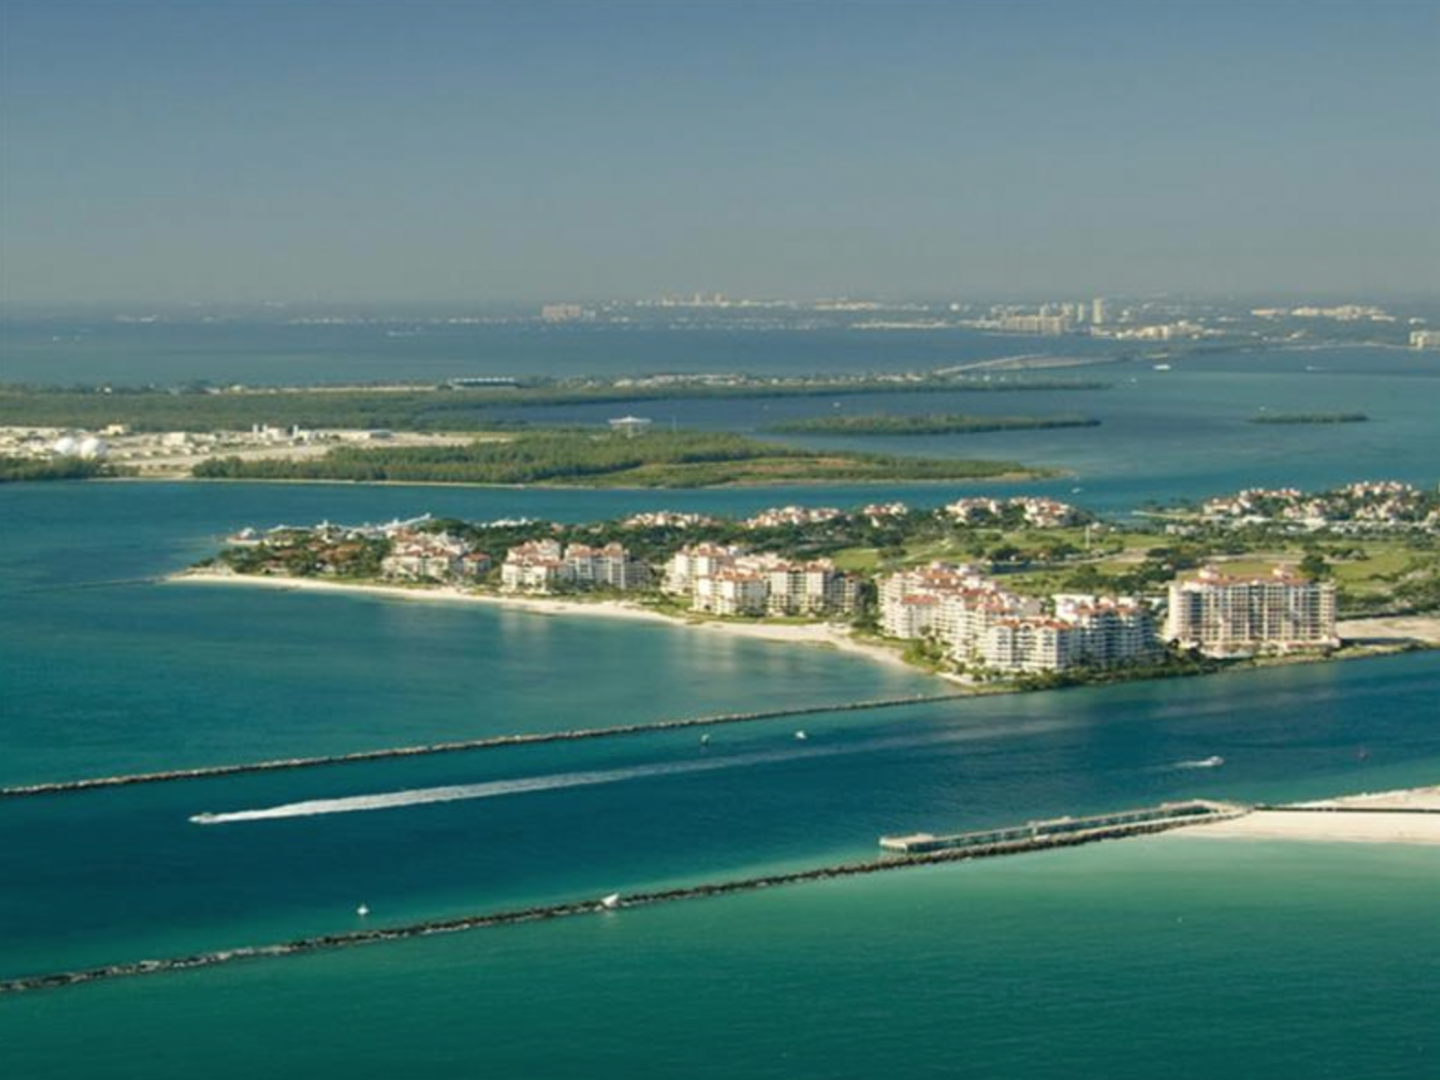 Fisher Island was created when a channel was cut through the bay.